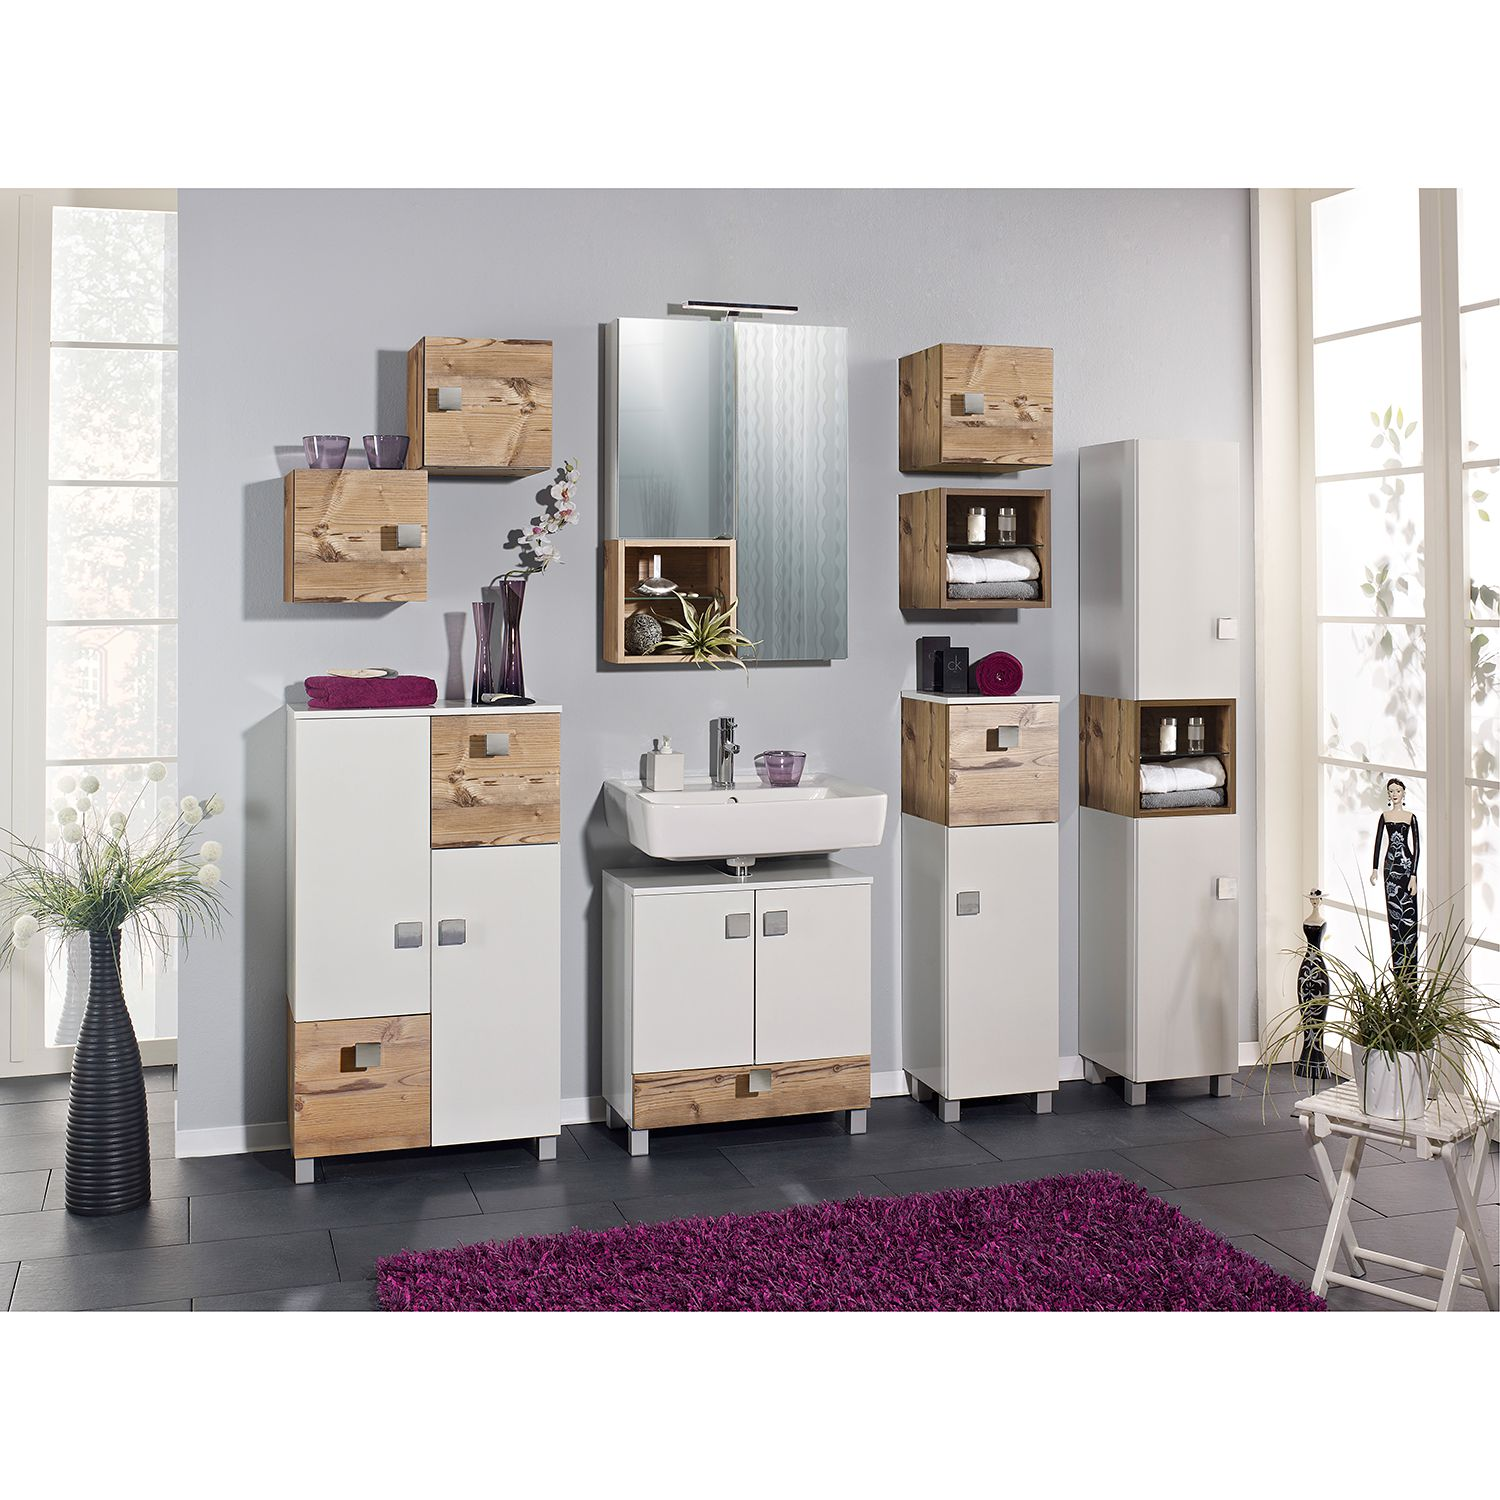 highboard toronto eint rig badezimmerschrank badschrank schrank badezimmer ebay. Black Bedroom Furniture Sets. Home Design Ideas